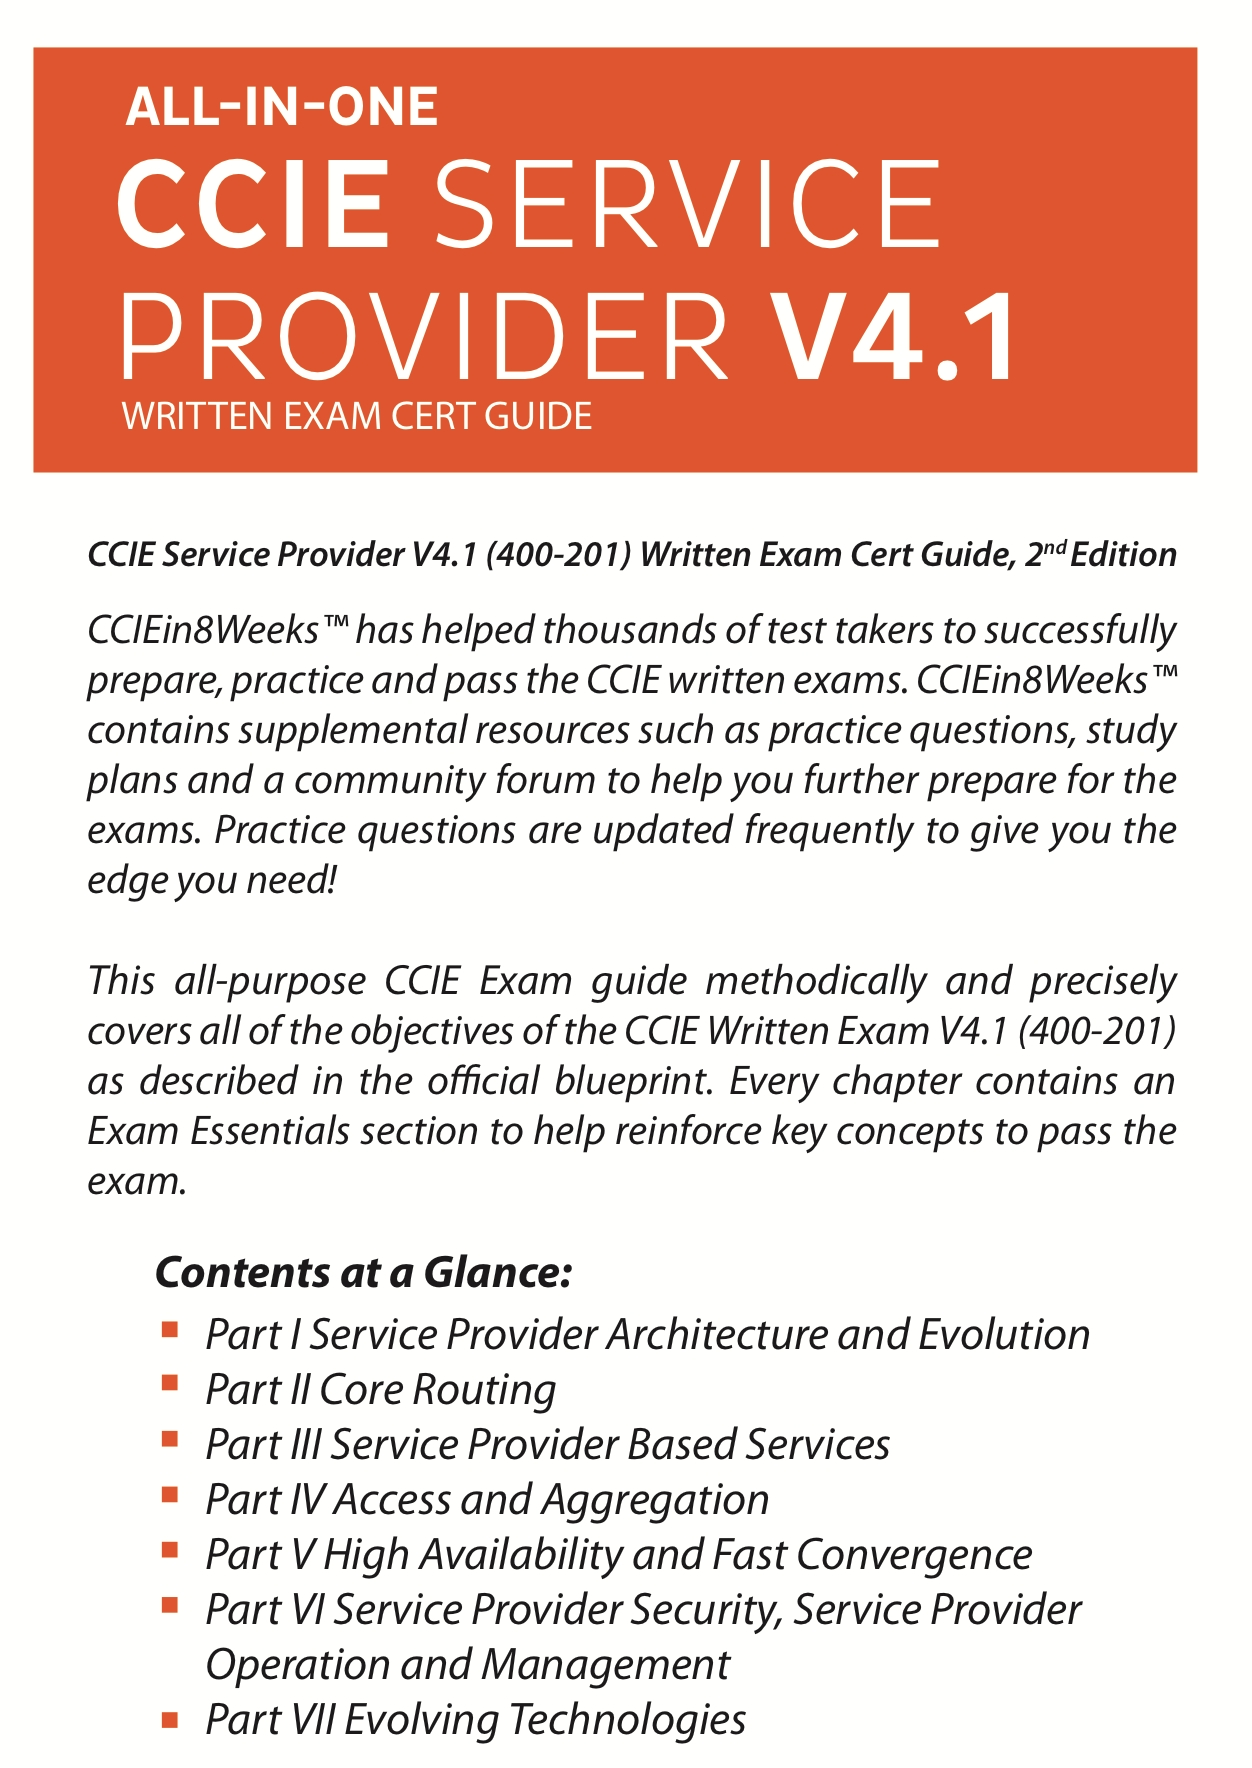 CCIE Study Guide - CCIE Tips | Pass CCIE Exams